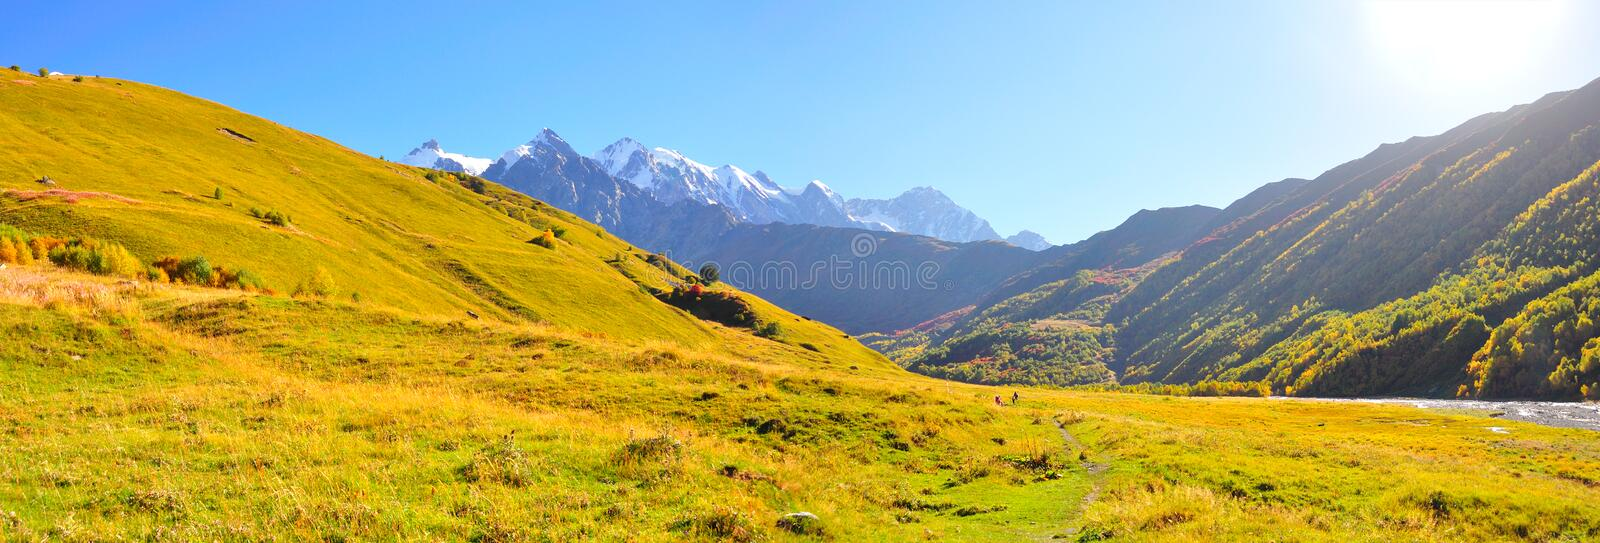 Download Mestia-Ushguli Trek, Svaneti Georgia Stock Image - Image: 27060383